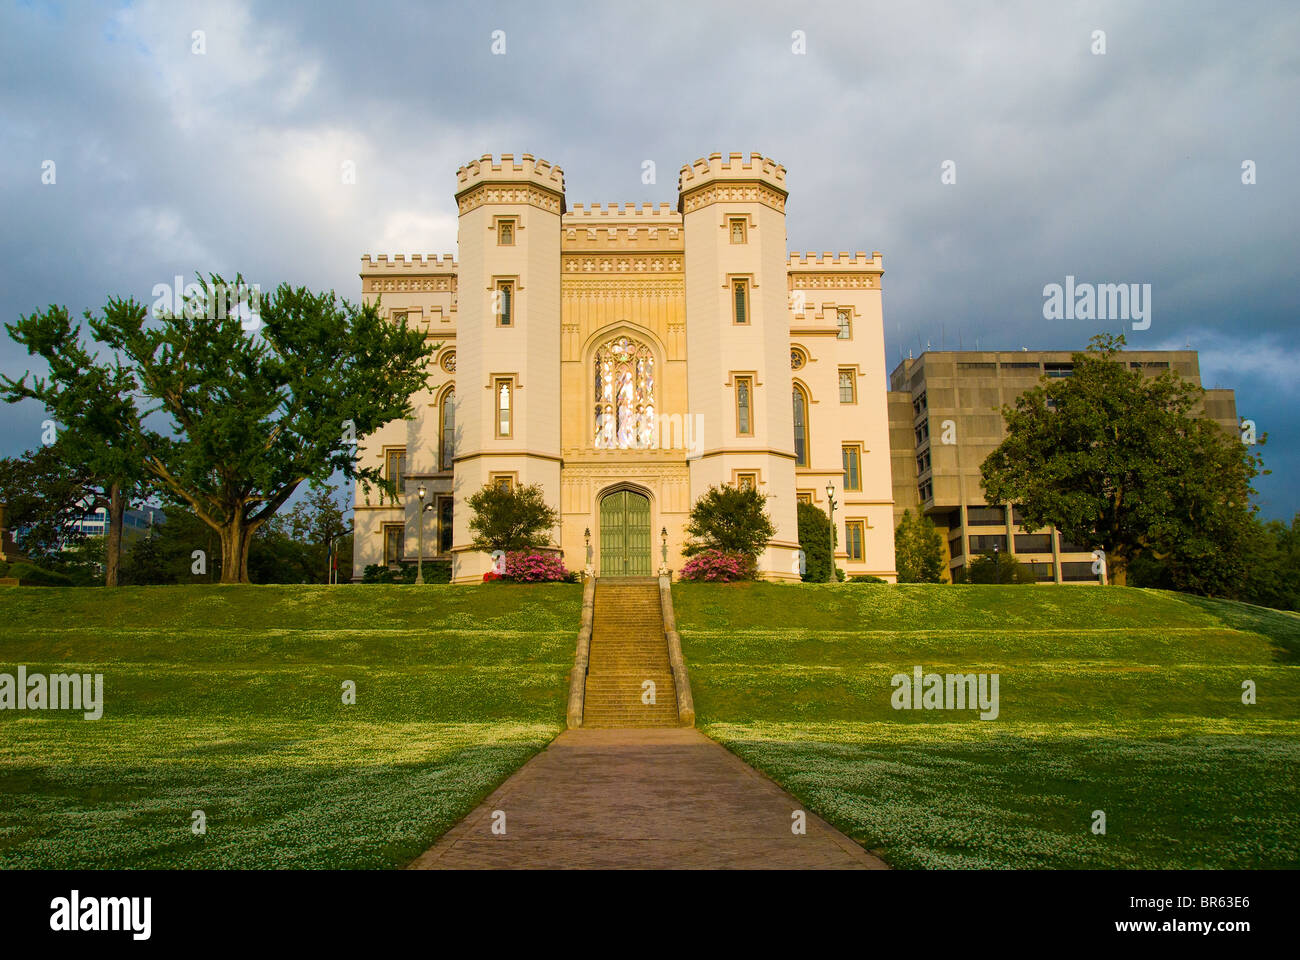 Louisiana's Old State Capitol built in 1847, now Museum of Political History, Baton Rouge, Louisiana, USA - Stock Image